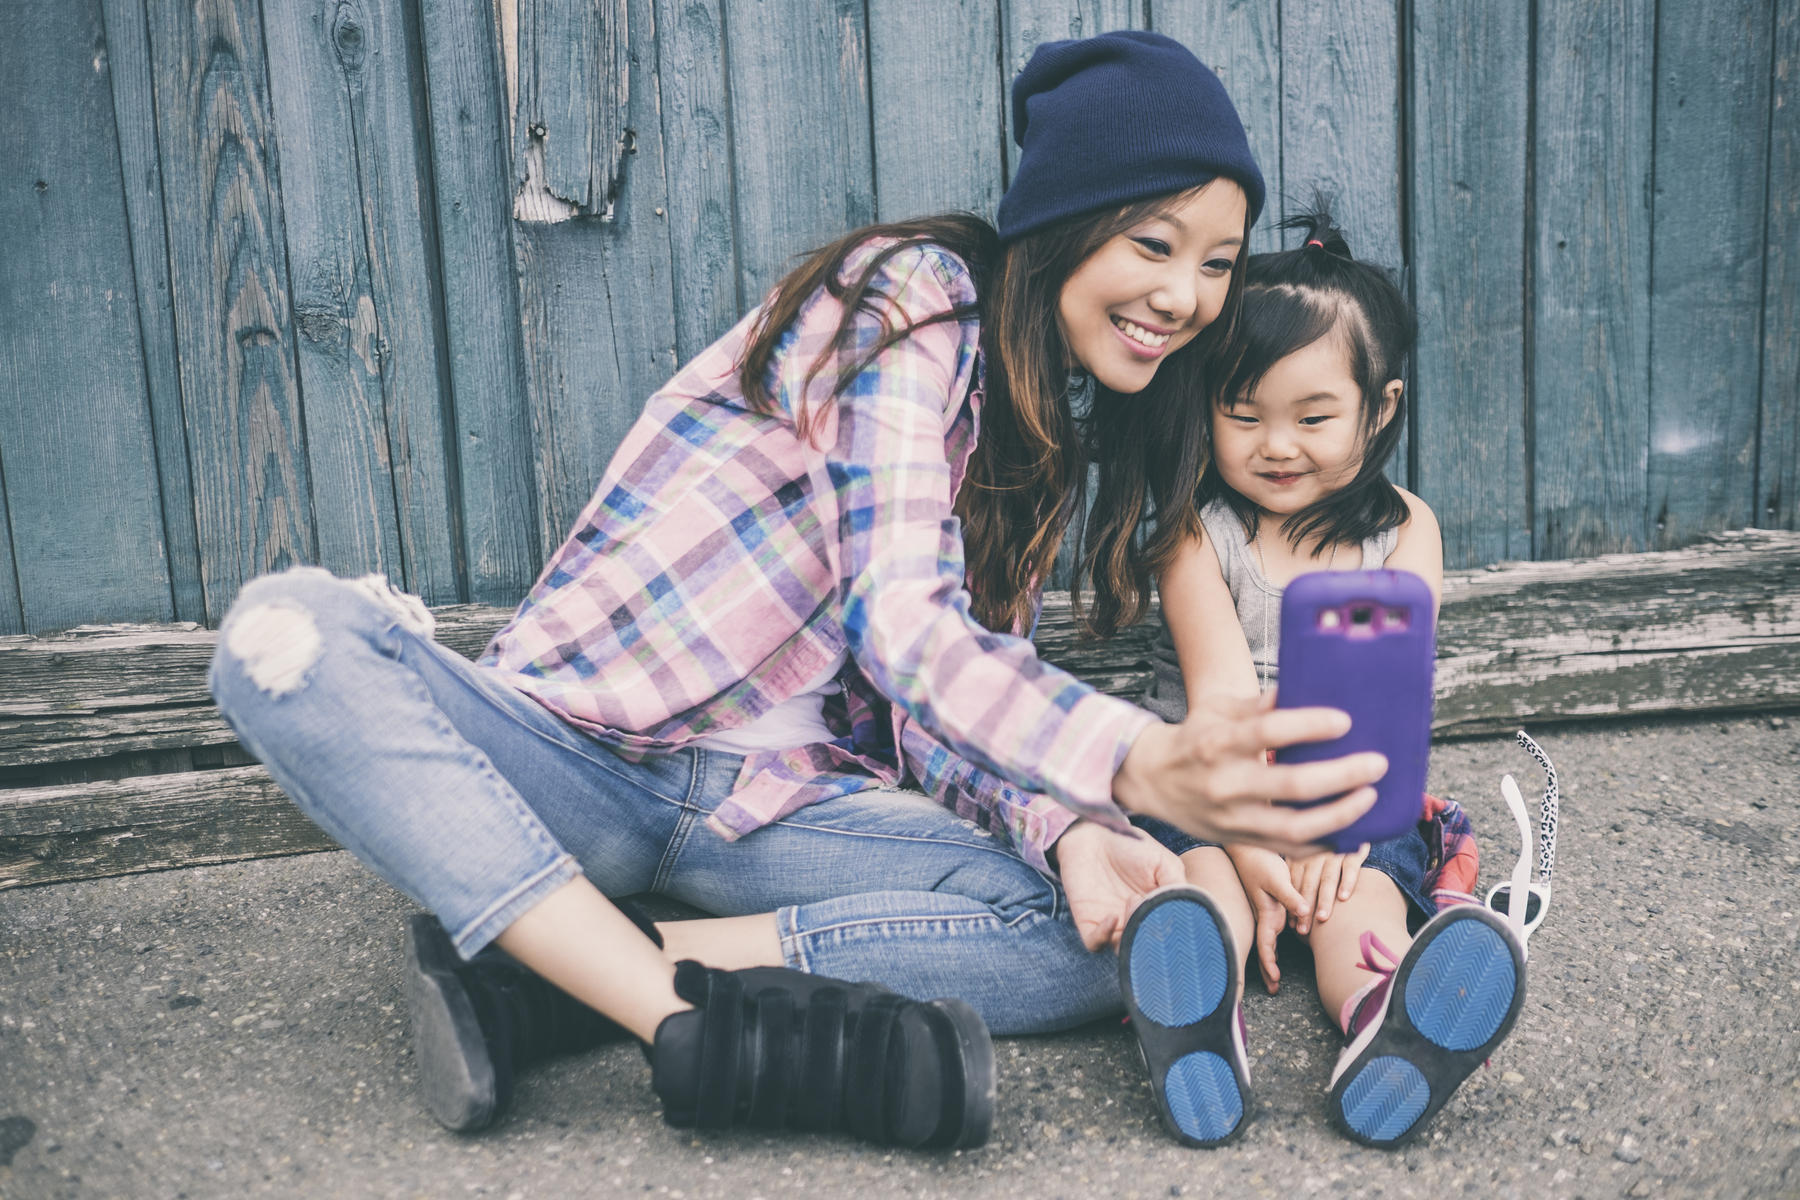 5 Best Photo-Editing Apps for Aspiring Mom Influencers